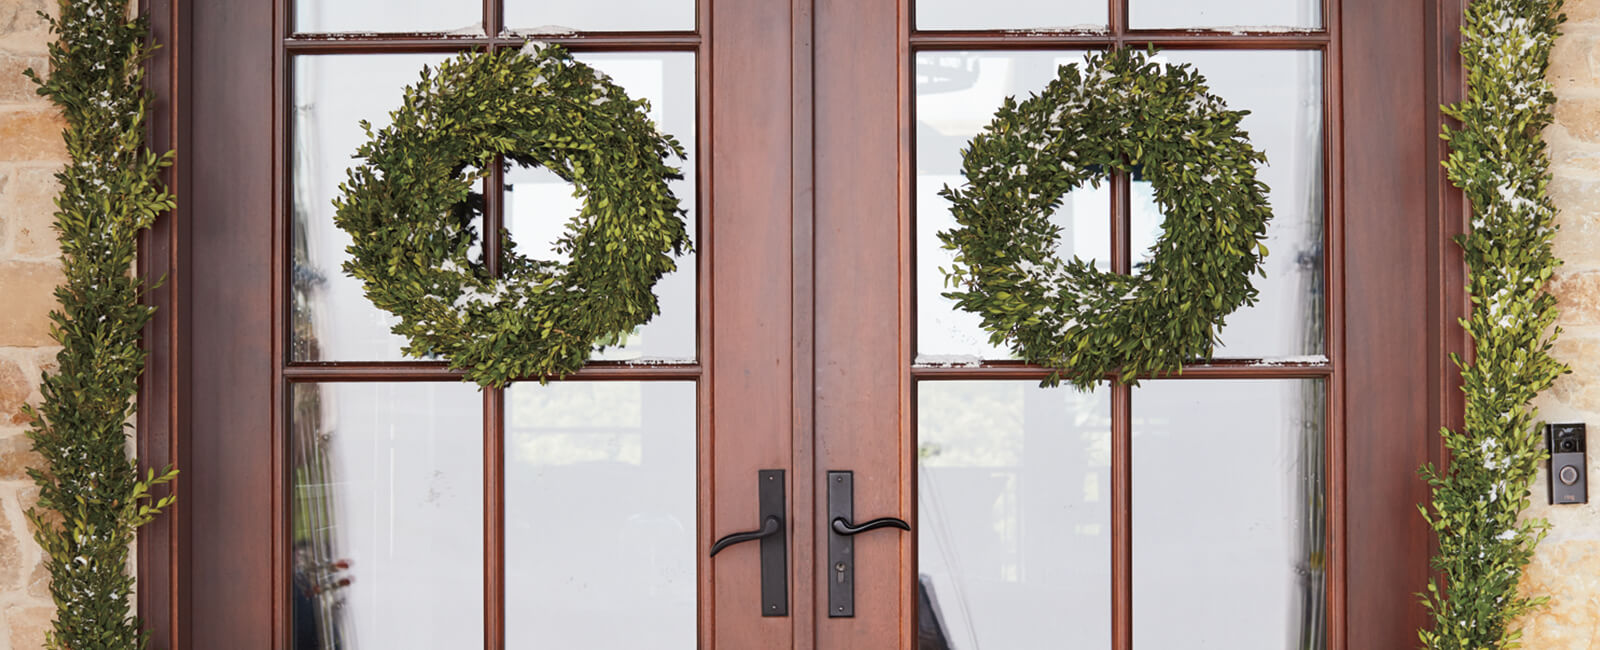 Decorate Doors for the Holidays